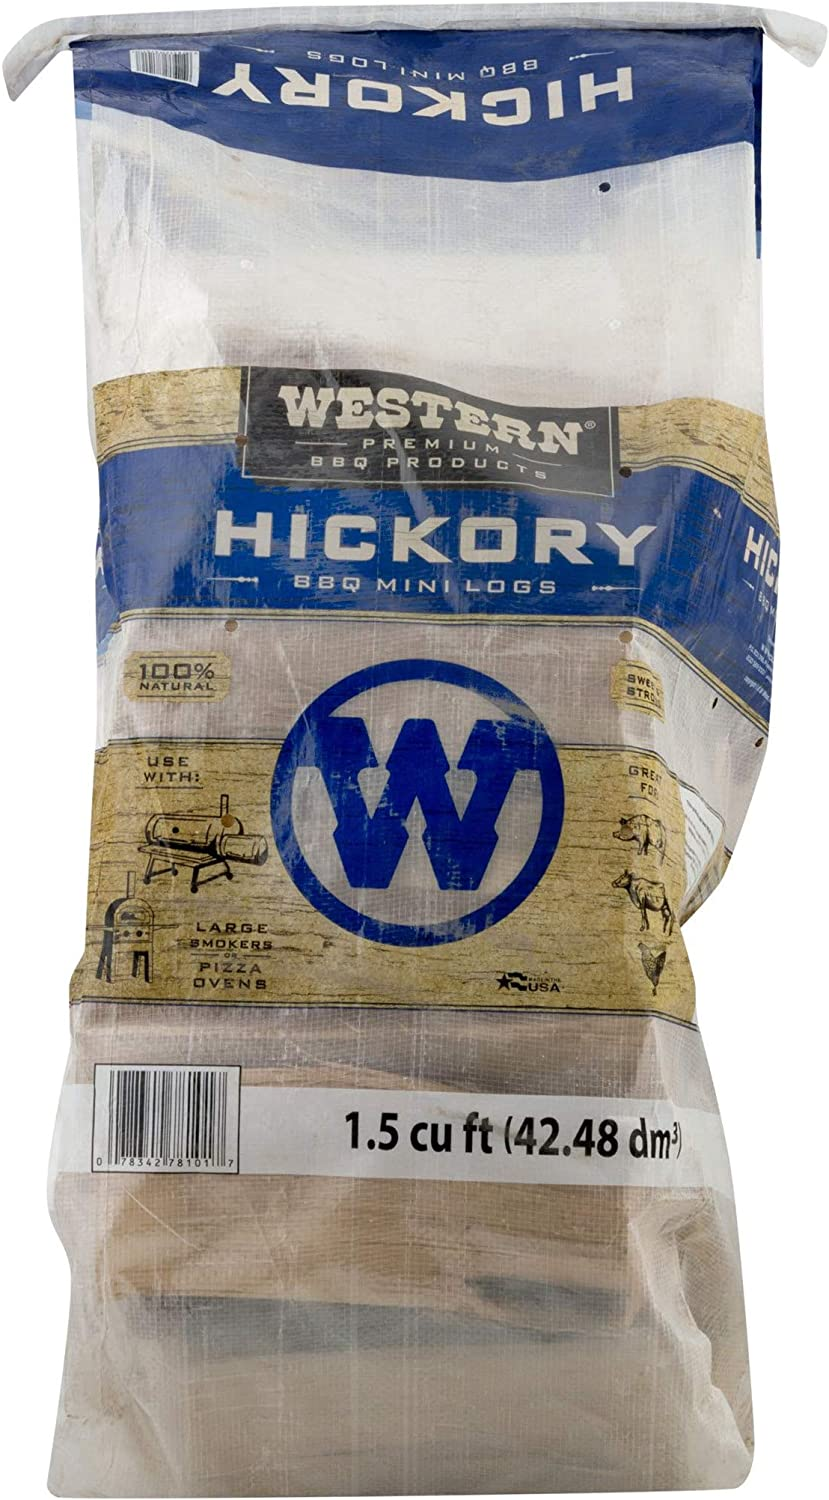 Western Premium BBQ Kiln Dried Hickory Wood Mini Logs with Robust Flavor for Barbecue Smokers or Grills, 1.5 Cubic Feet : Garden & Outdoor